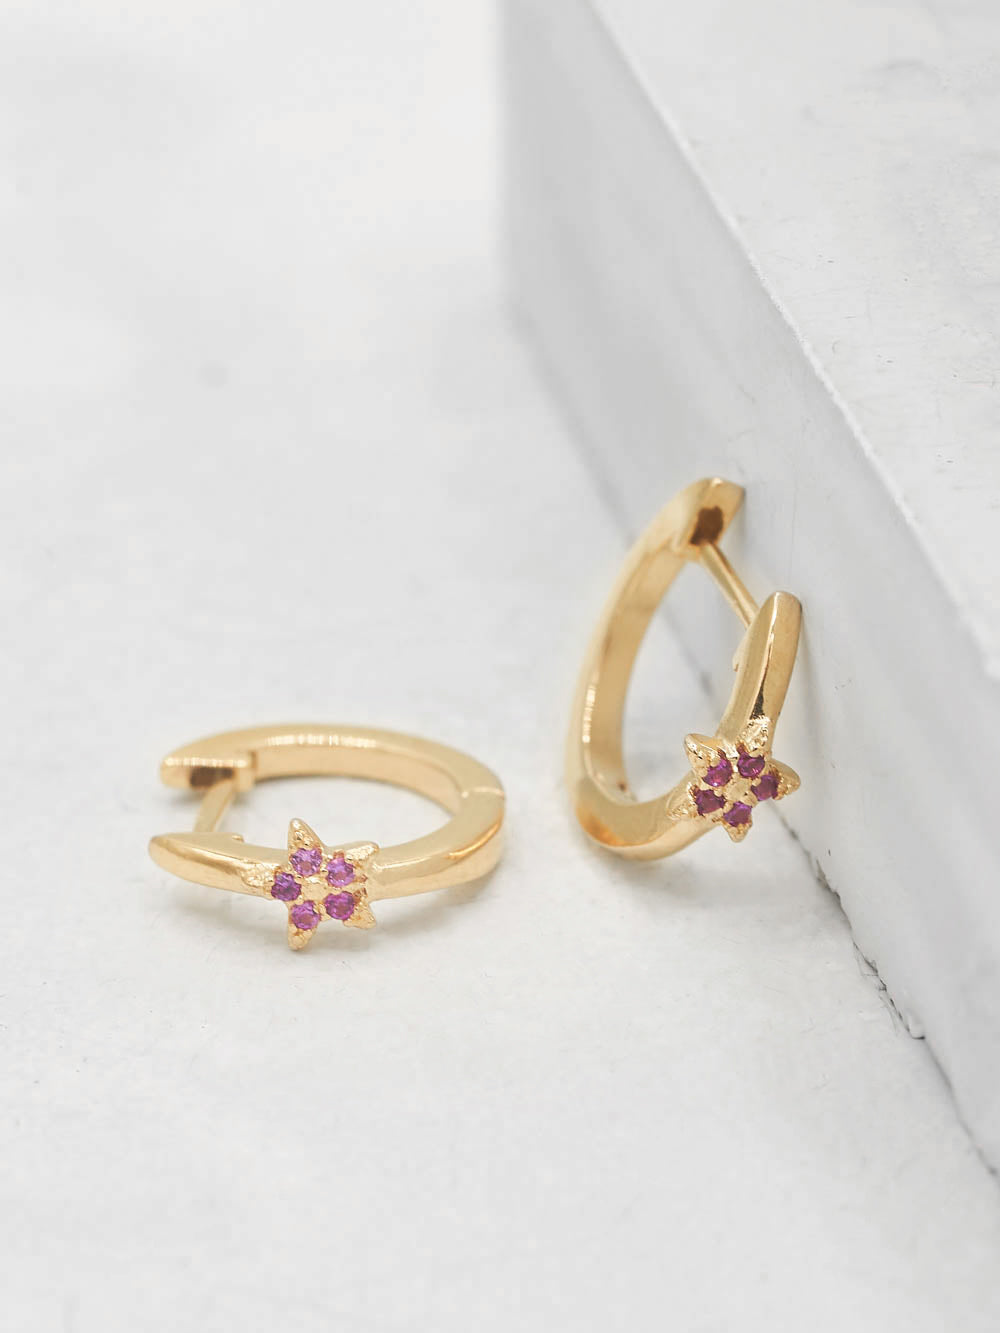 Gold Plated Brass Mini Star with Pink Ruby  CZ Cubic Zirconia Hoop Huggies Dainty Earring by The Faint Hearted Jewelry